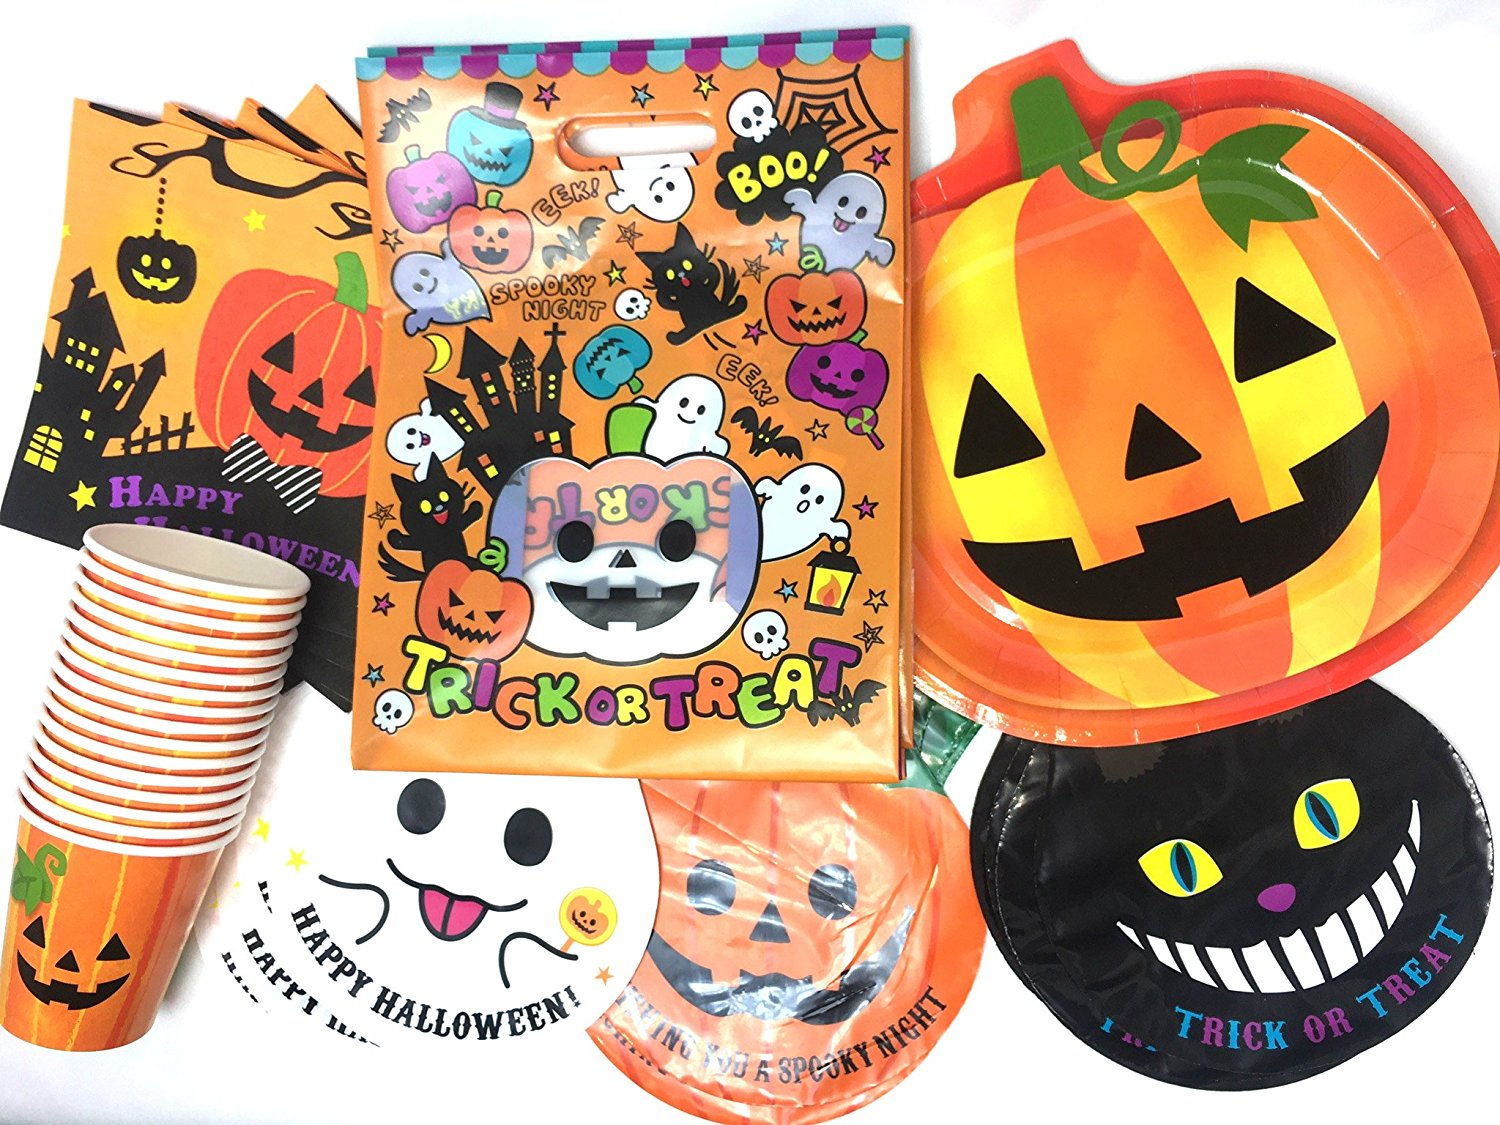 halloween theme party supplies collection for 6 guests plates napkins cups pumpkin ghost cat treat